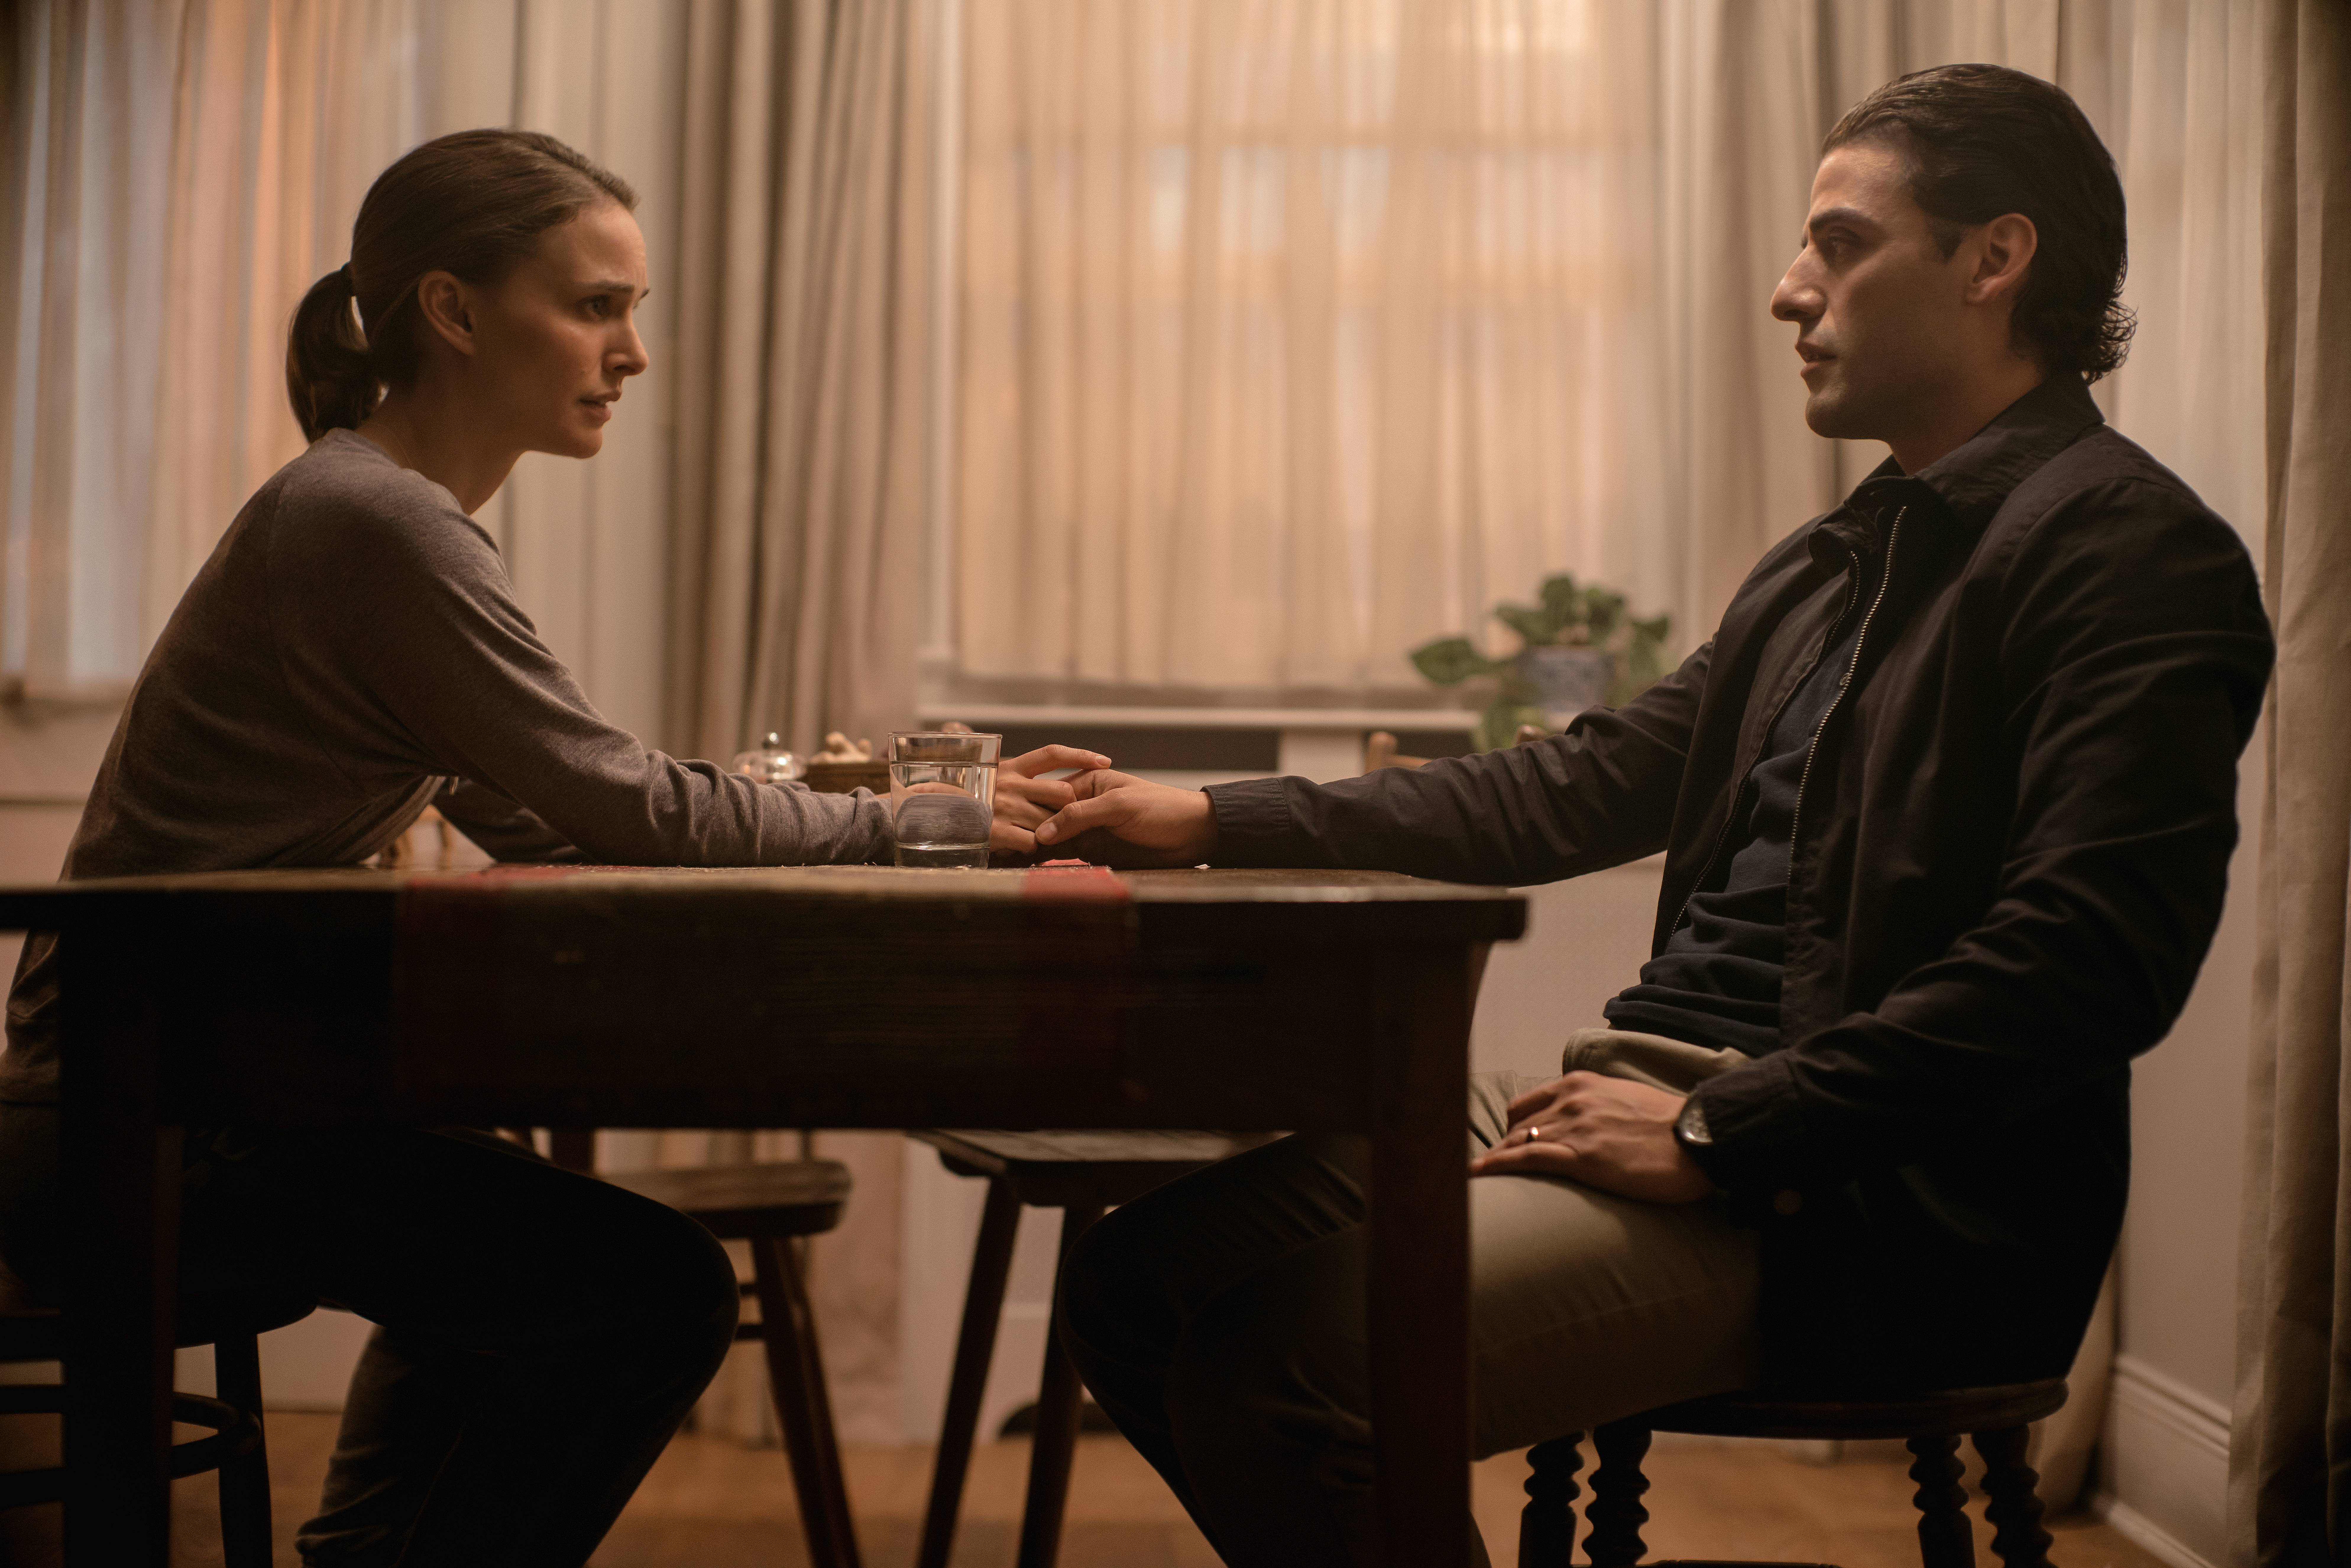 Left to right: Natalie Portman and Oscar Isaac in ANNIHILATION, from Paramount Pictures and Skydance.